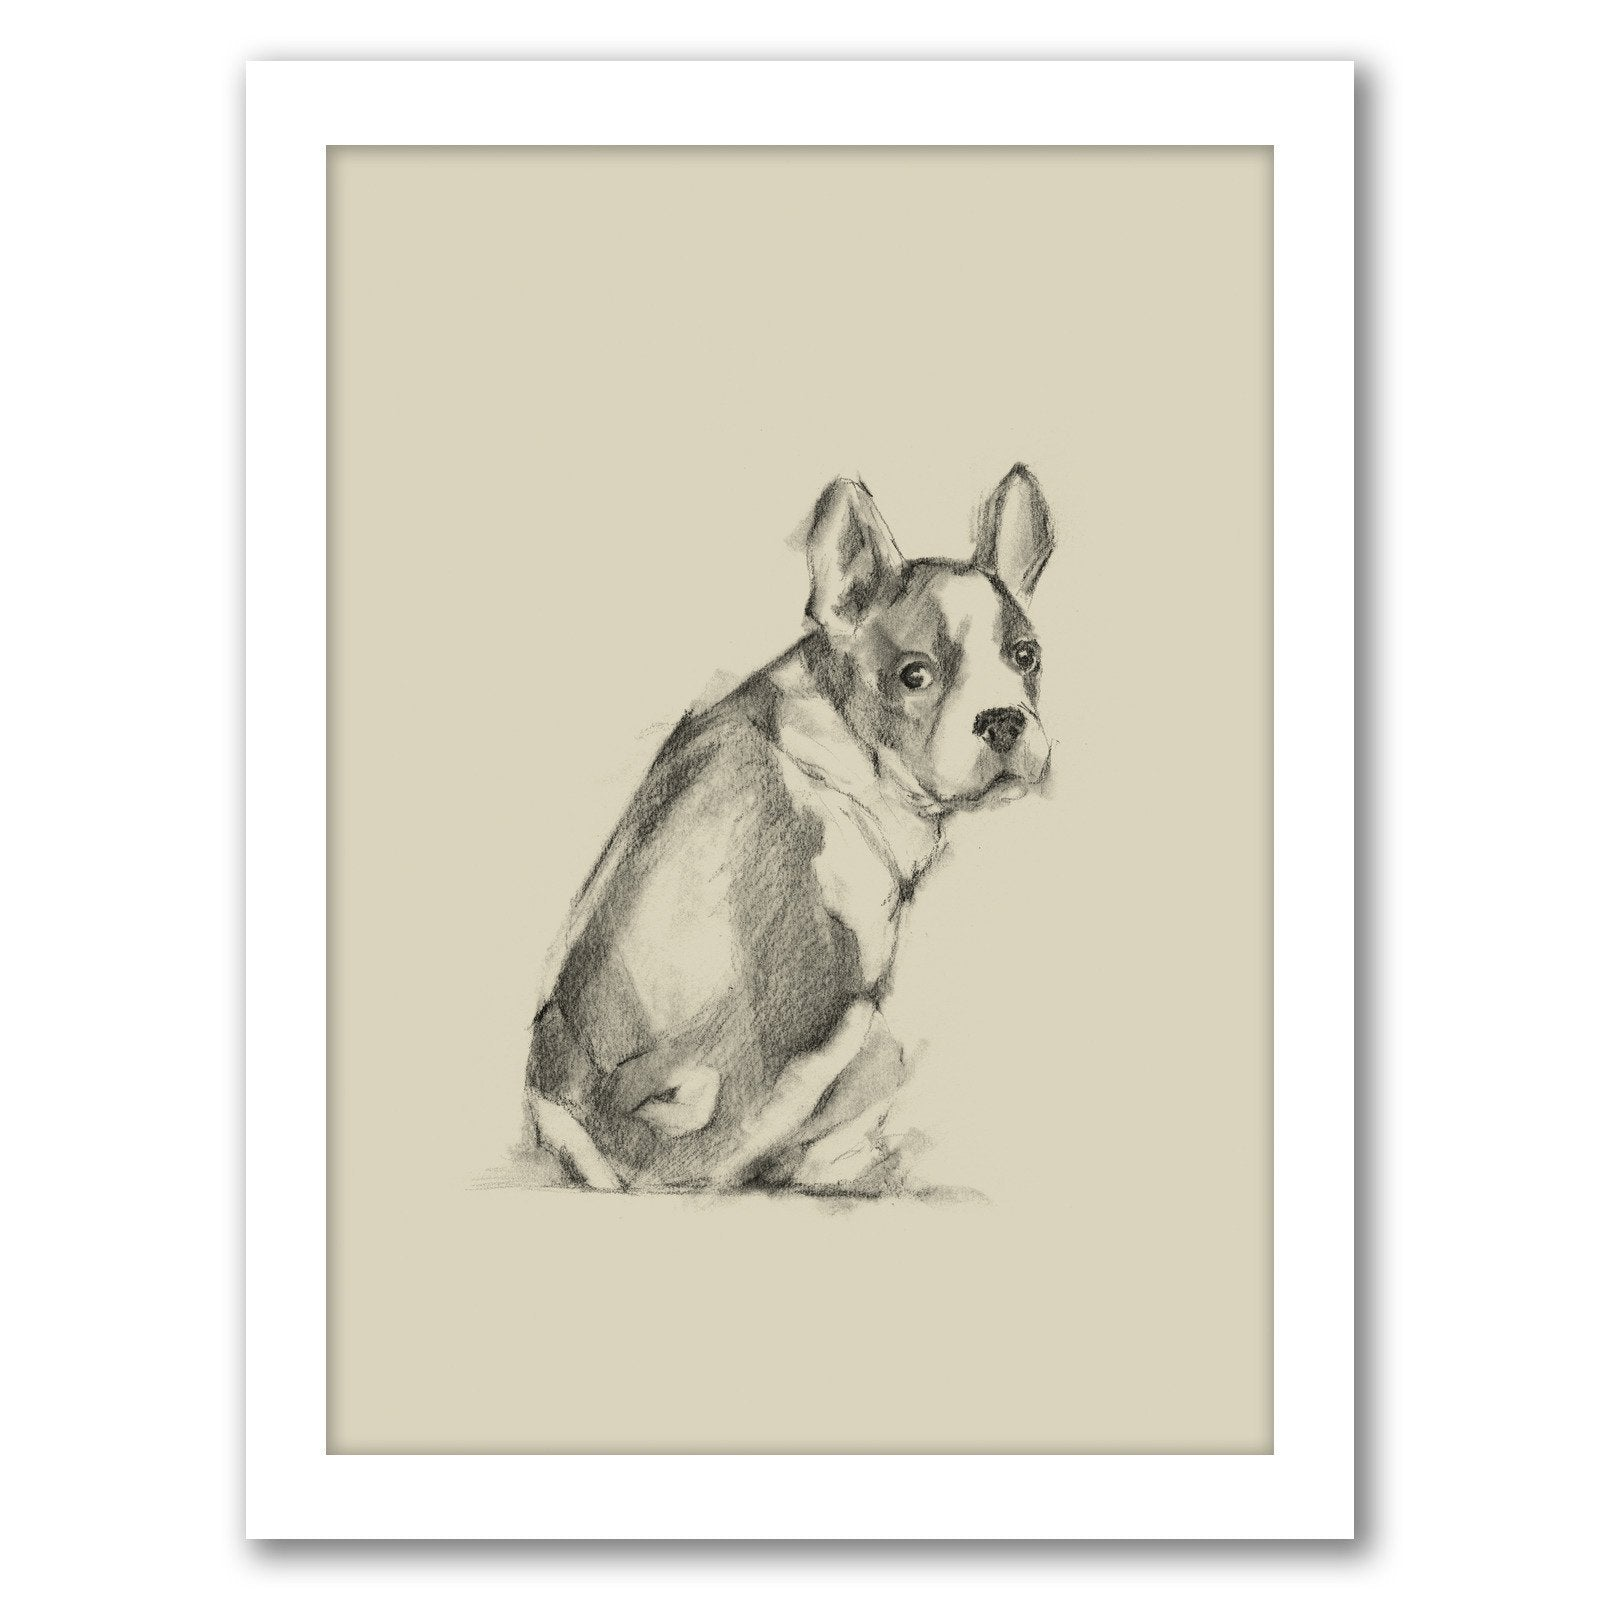 Puppy Dog Eyes IV by Ethan Harper by World Art Group - Framed Print